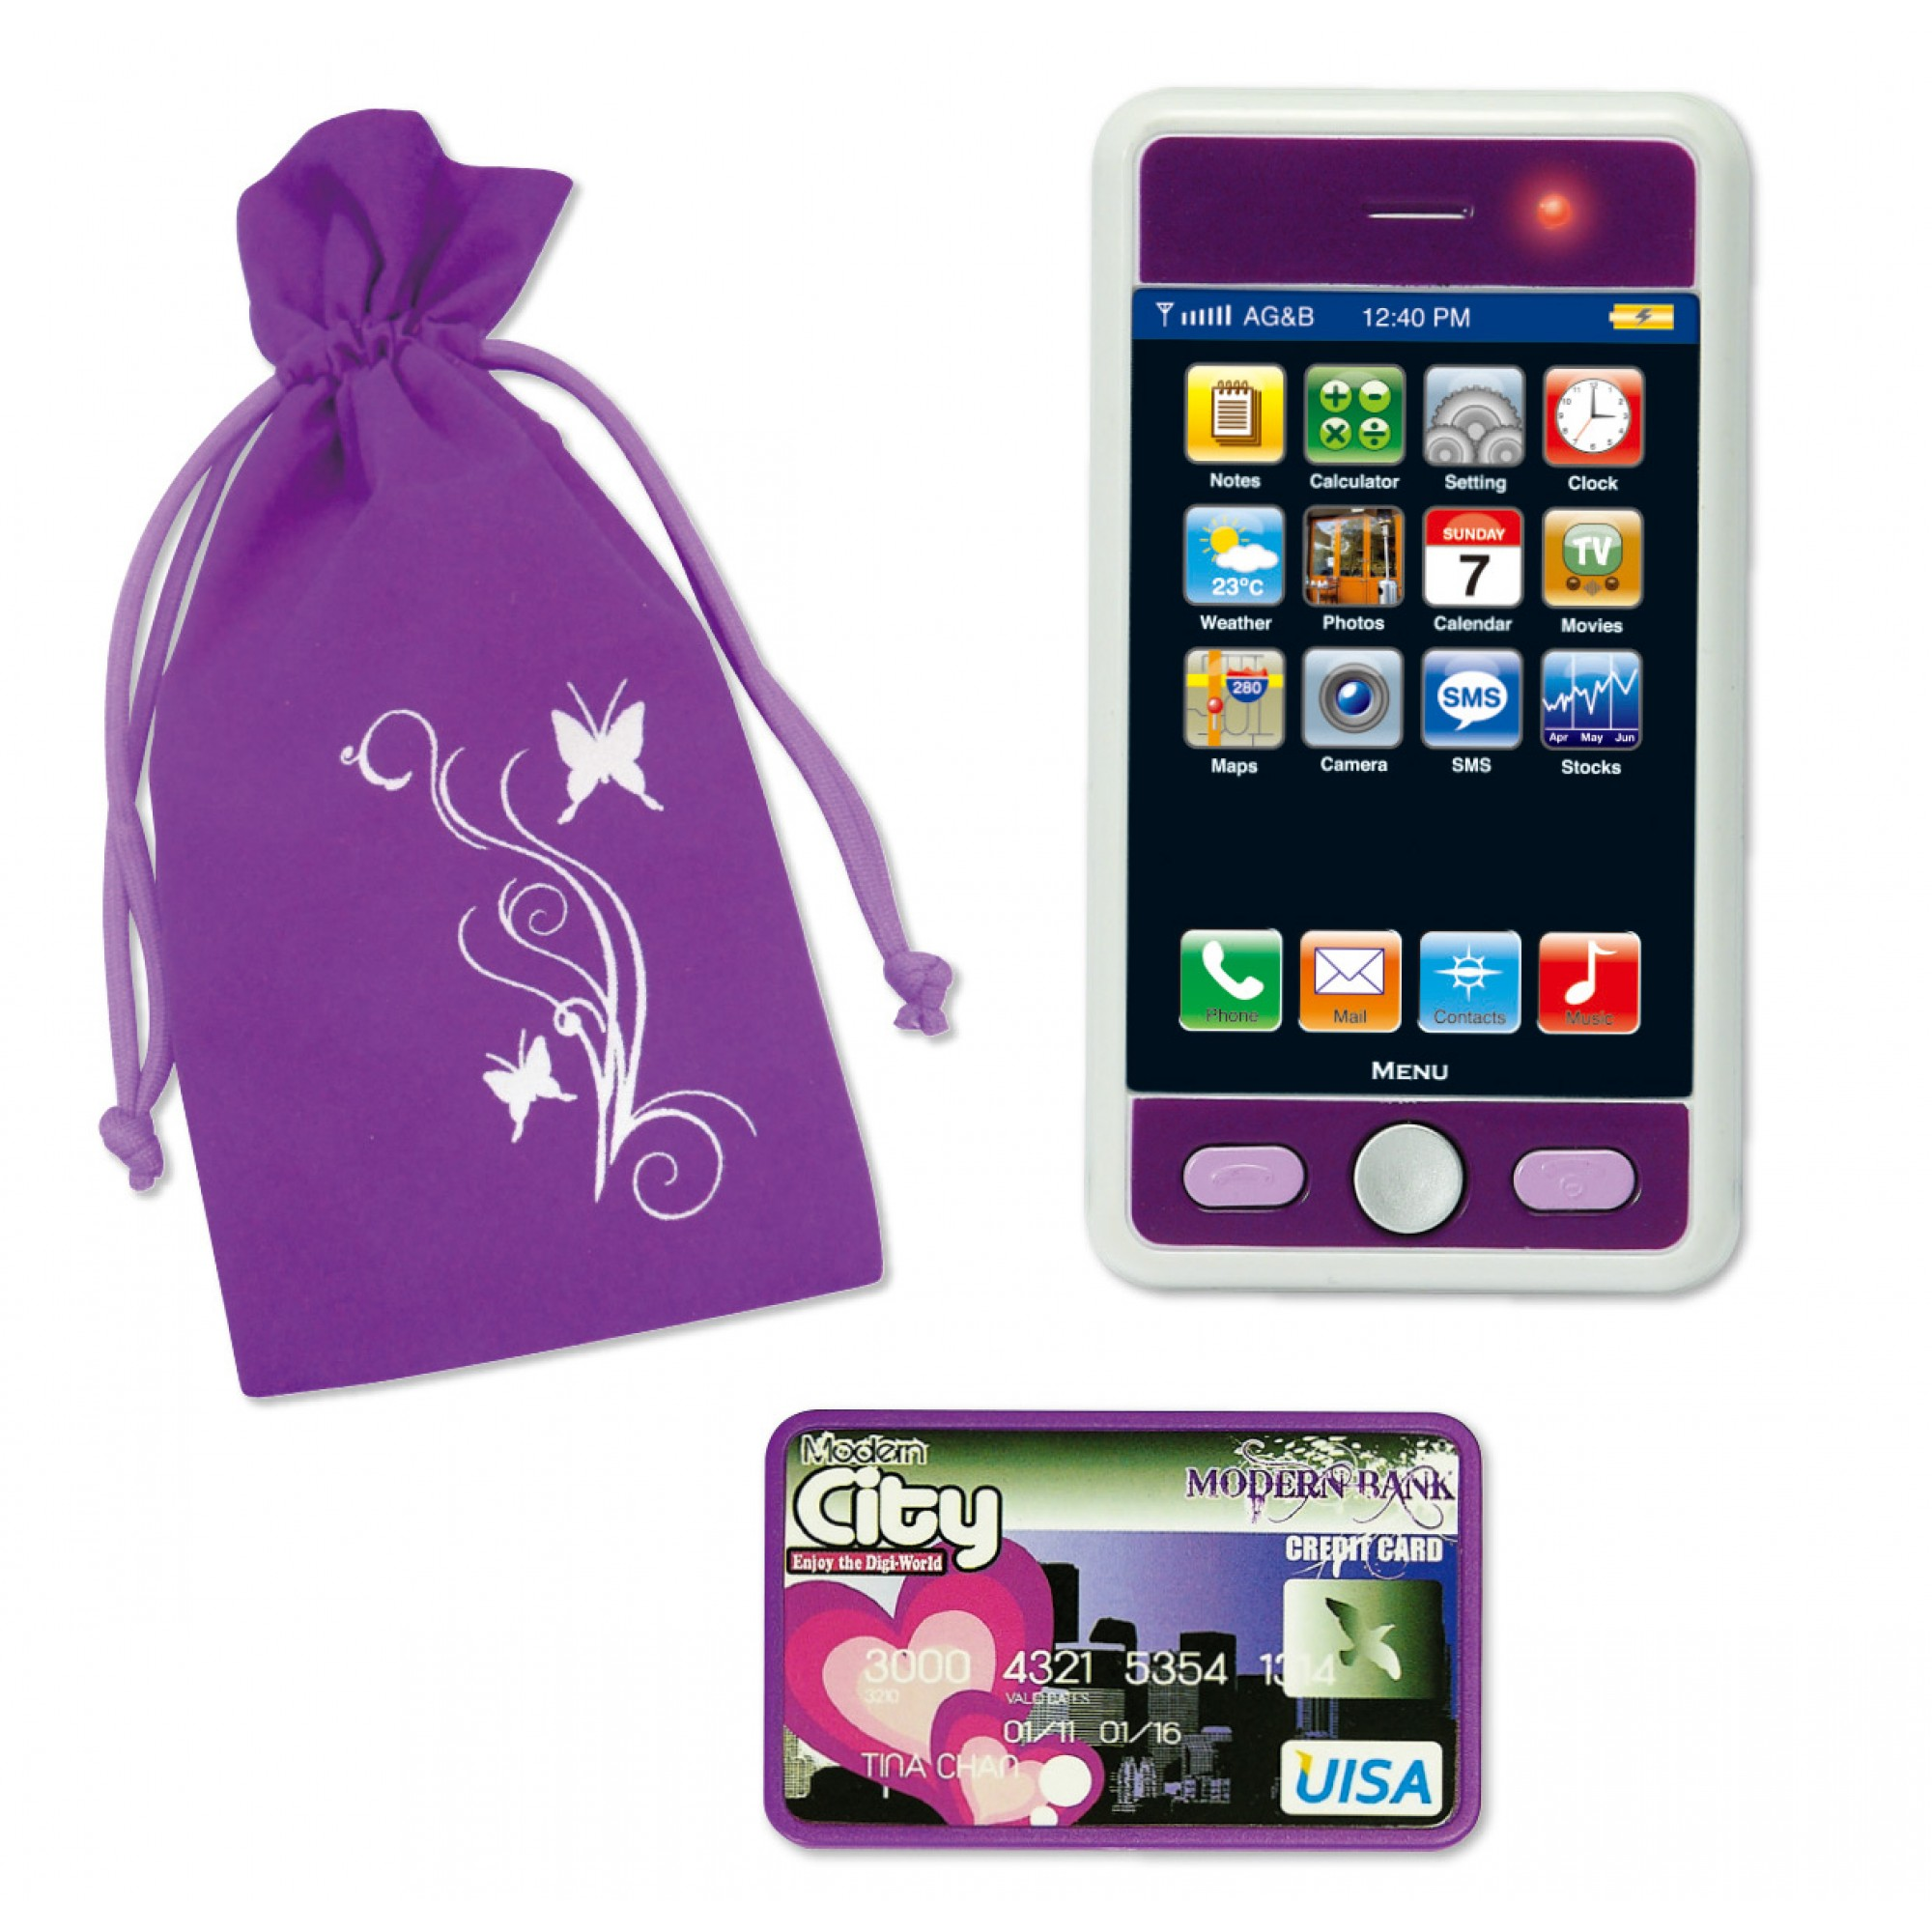 Modern City Play Phone Set w/ Bag